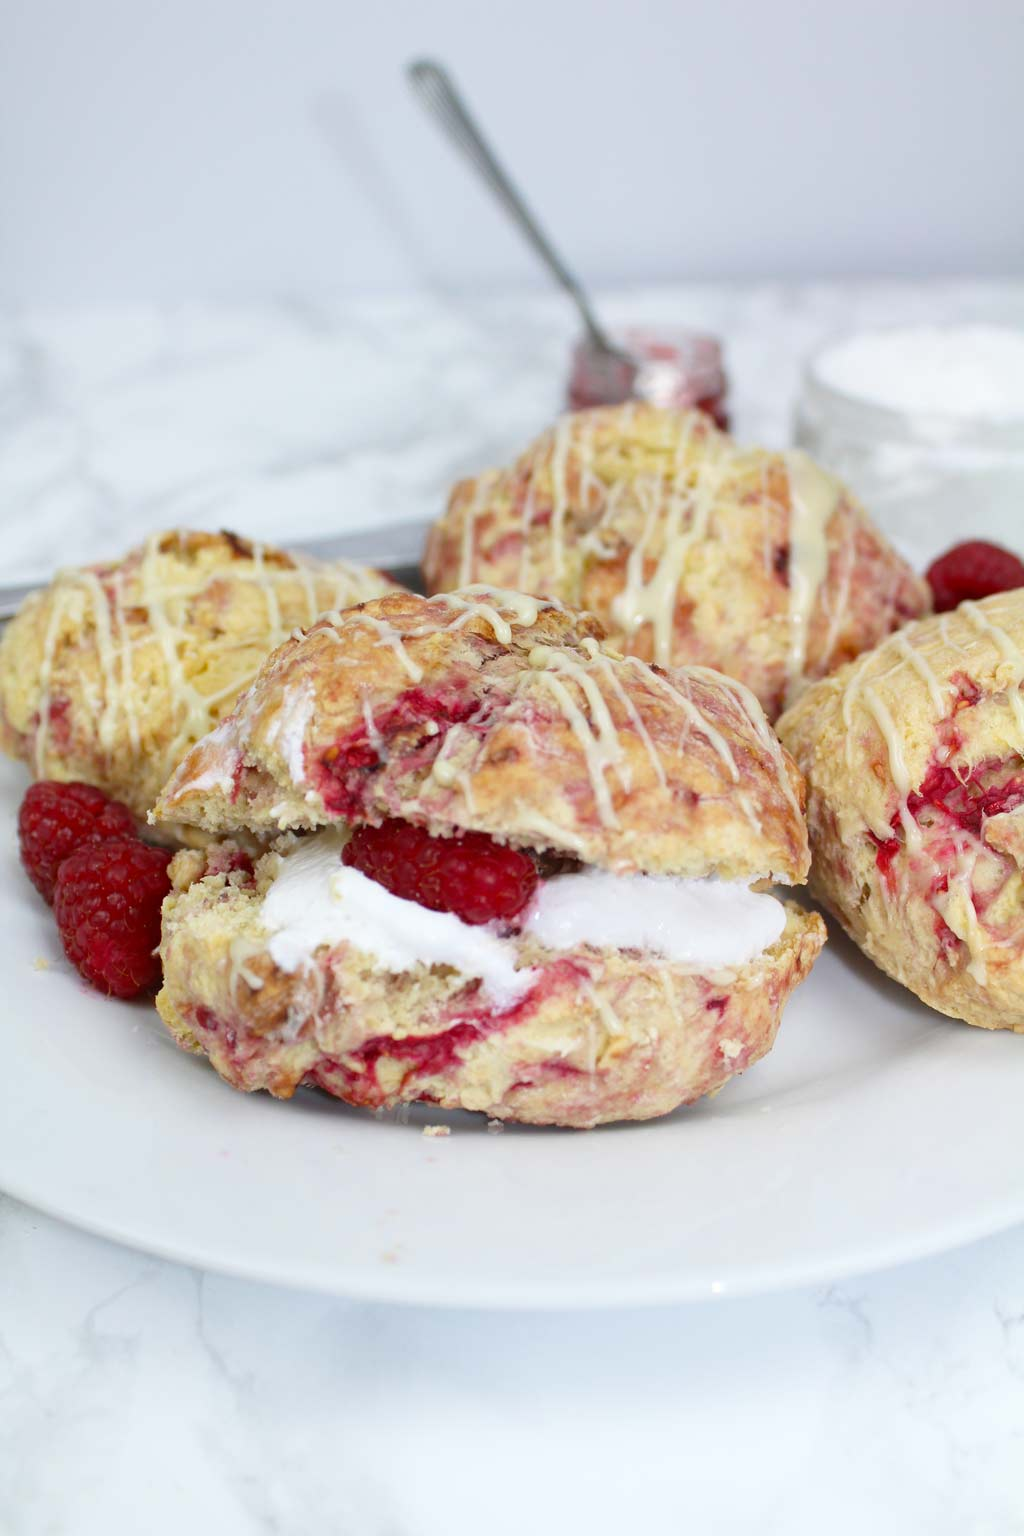 scones on a plate filled with cream